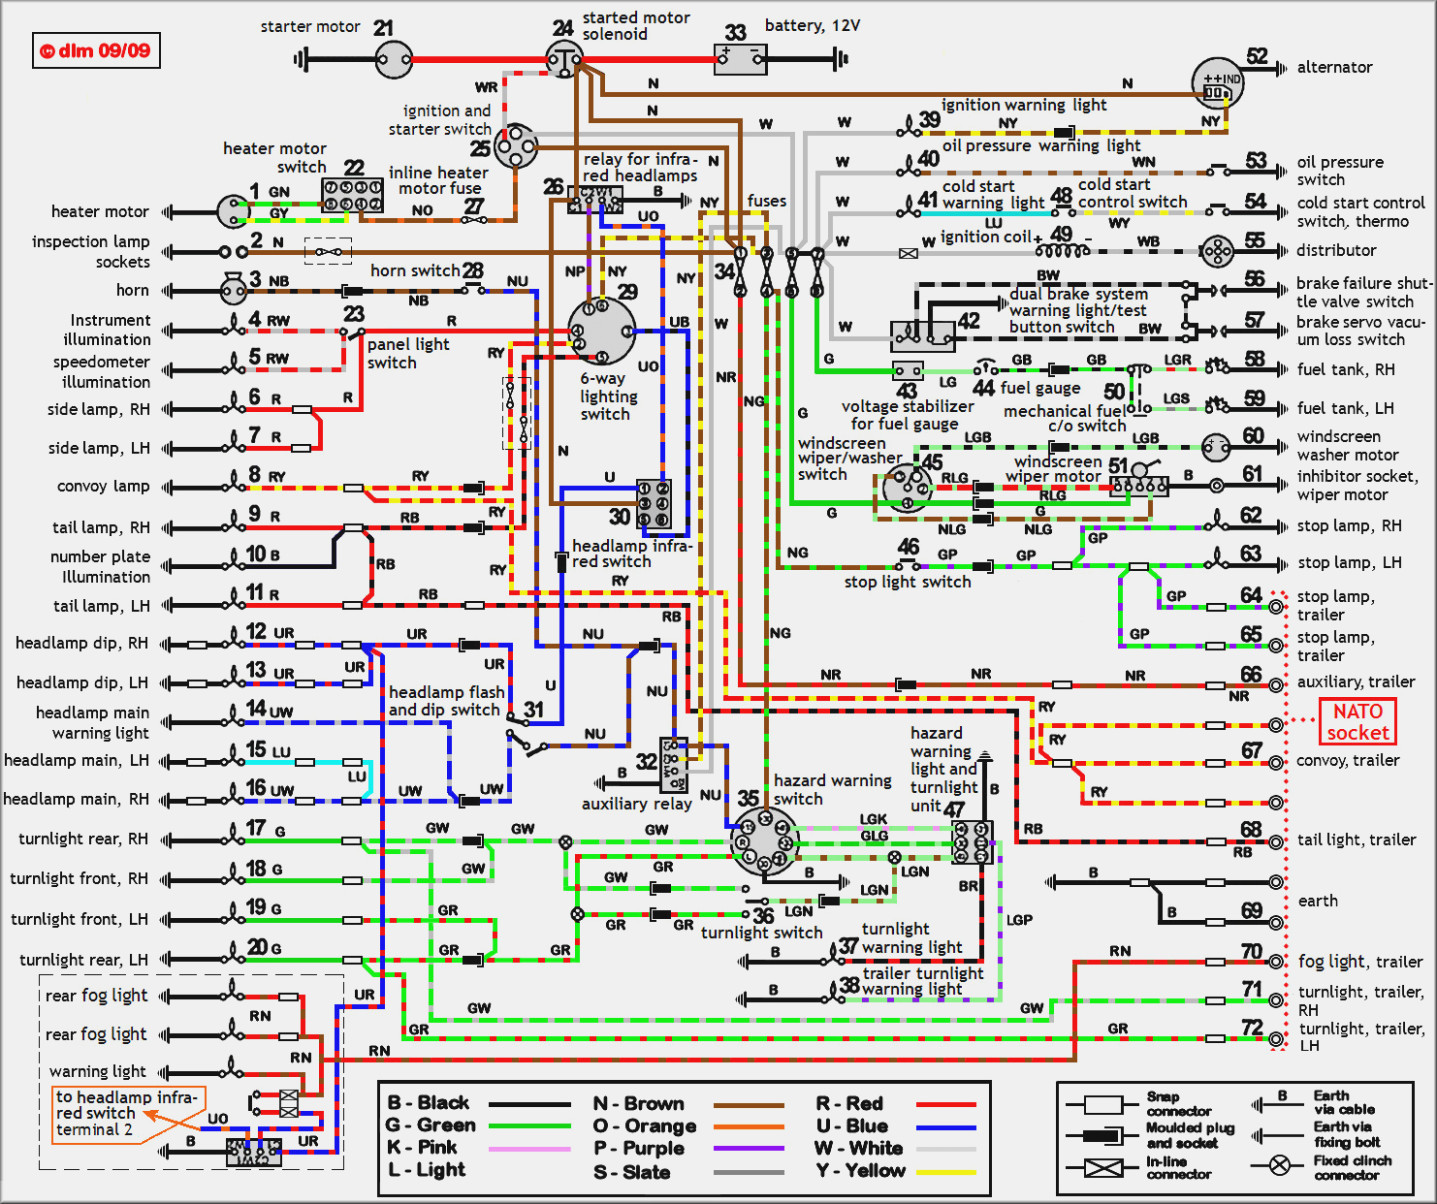 Diagram 1993 Range Rover Wiring Diagram Full Version Hd Quality Wiring Diagram Mara Diagram Origineworkingaussies Fr